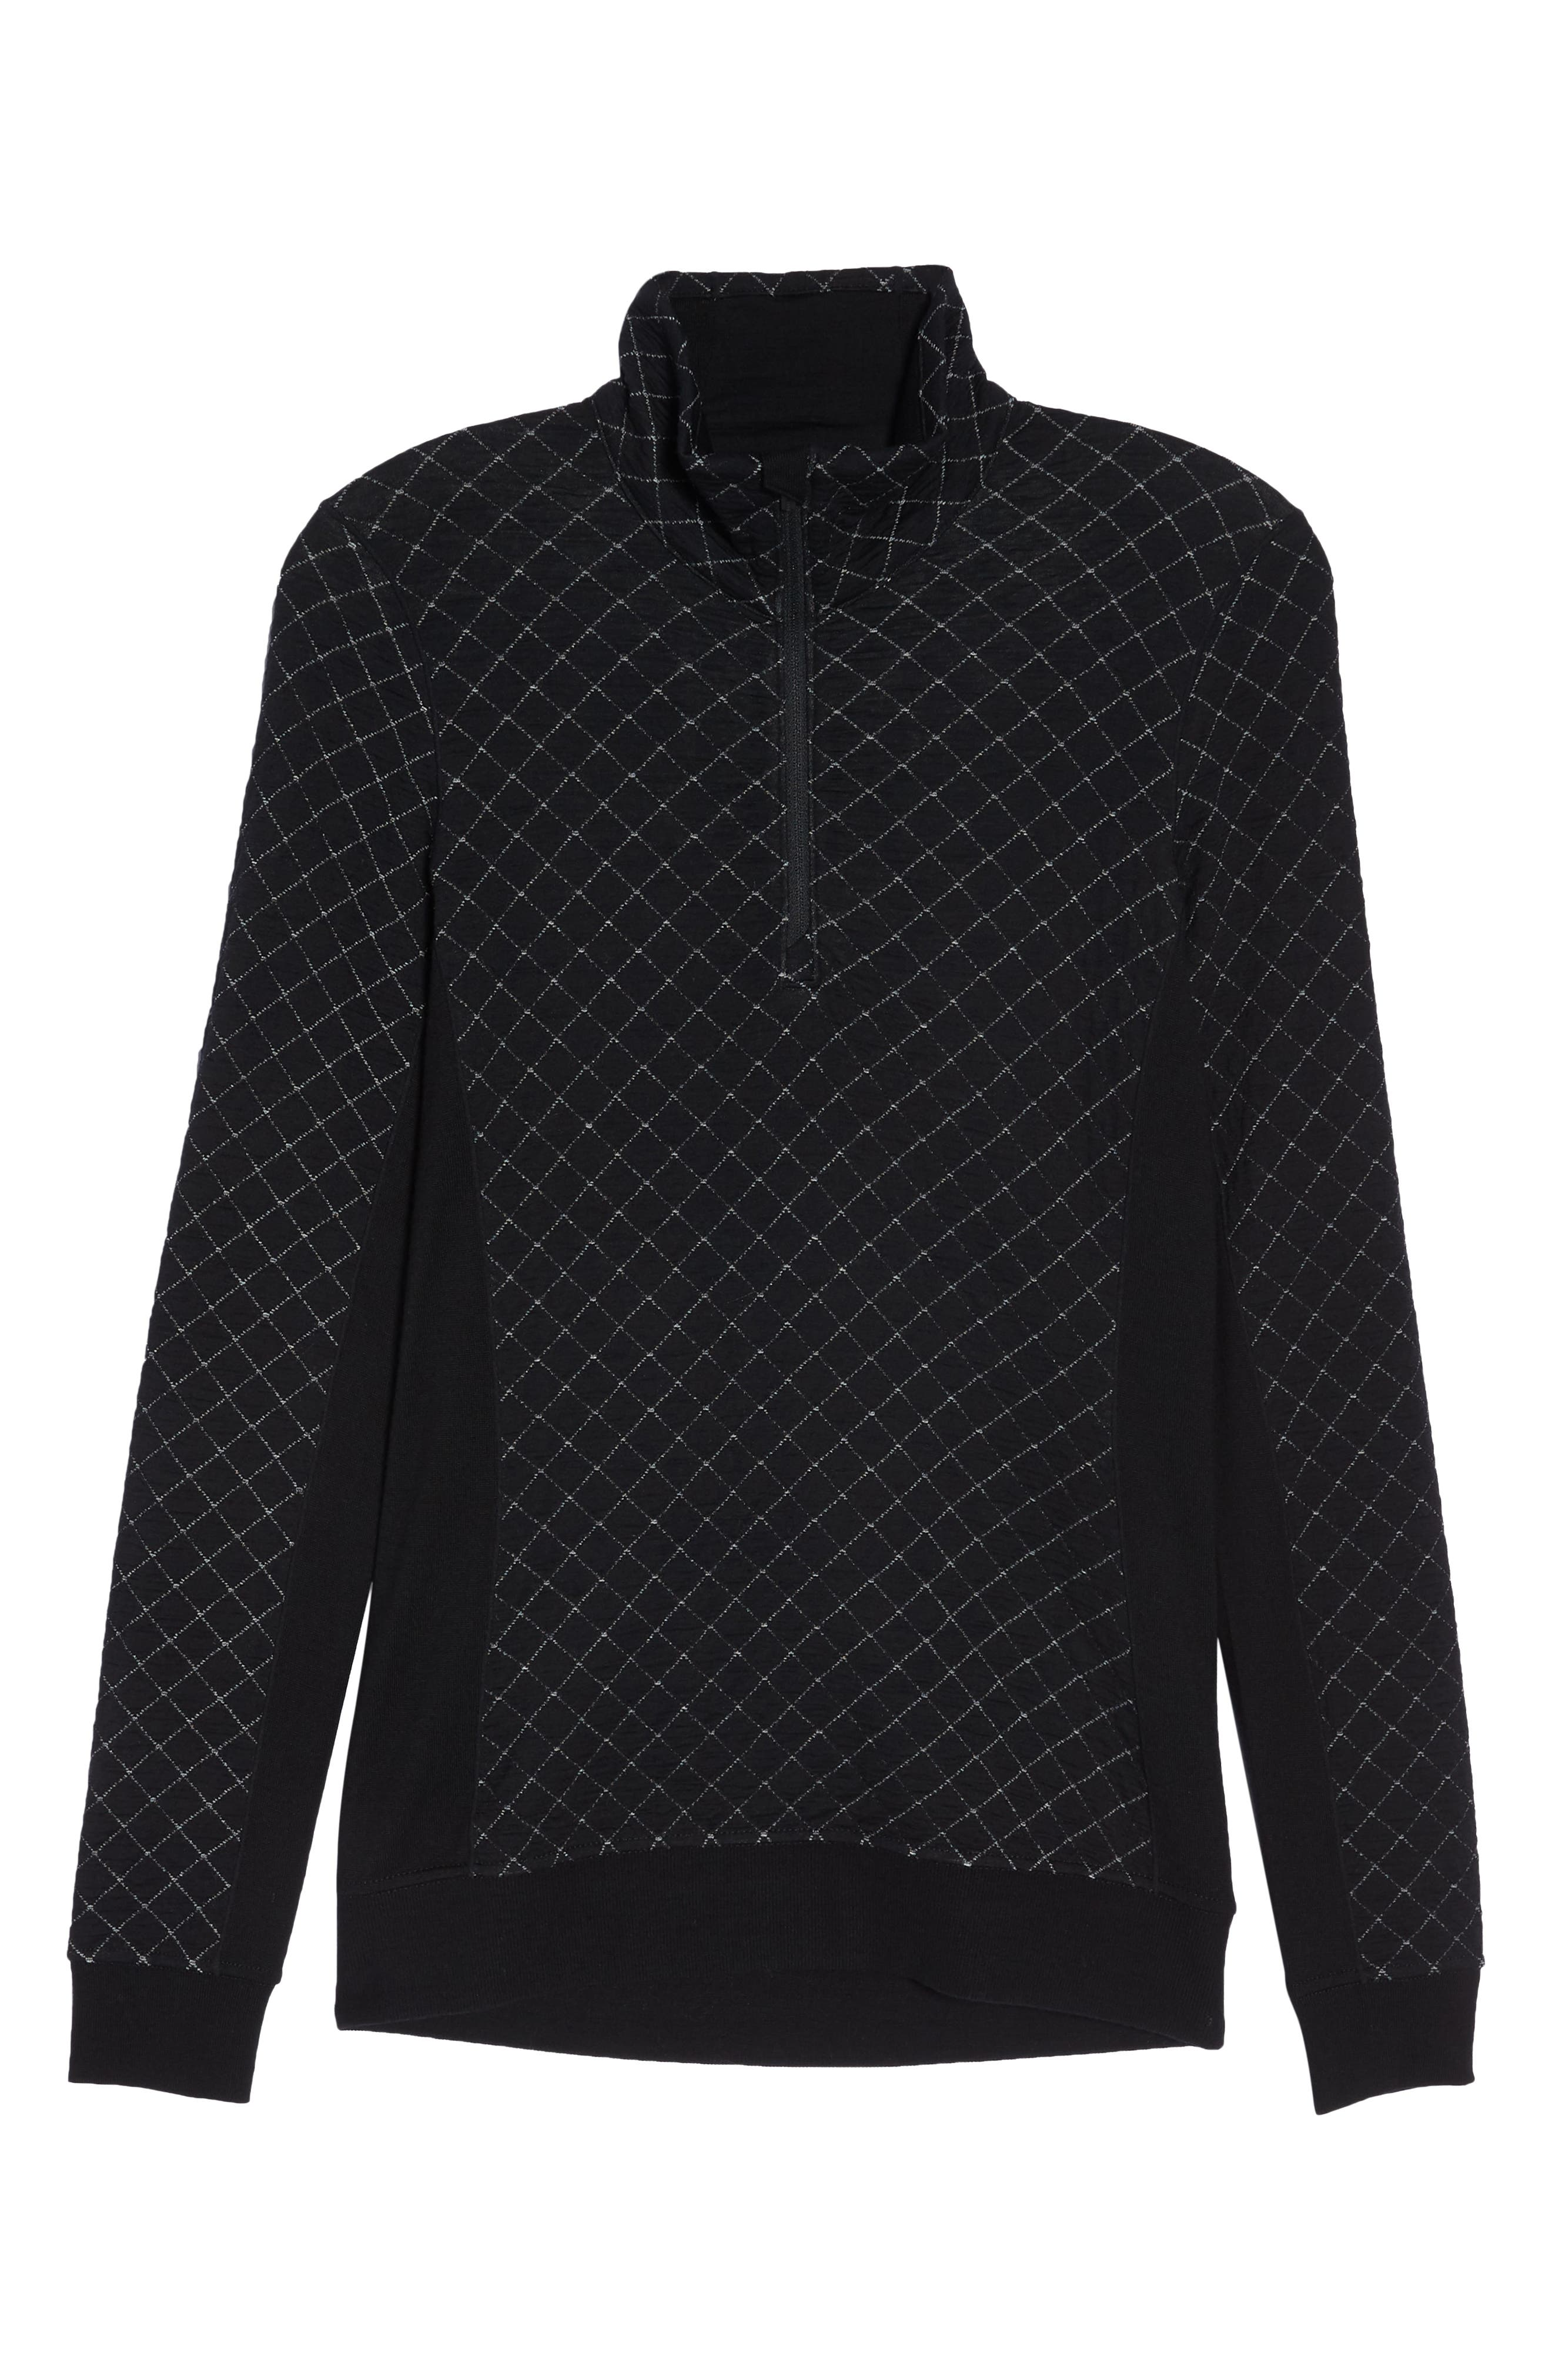 Affinity Thermo Long Sleeve Half Zip Pullover,                             Alternate thumbnail 7, color,                             BLACK